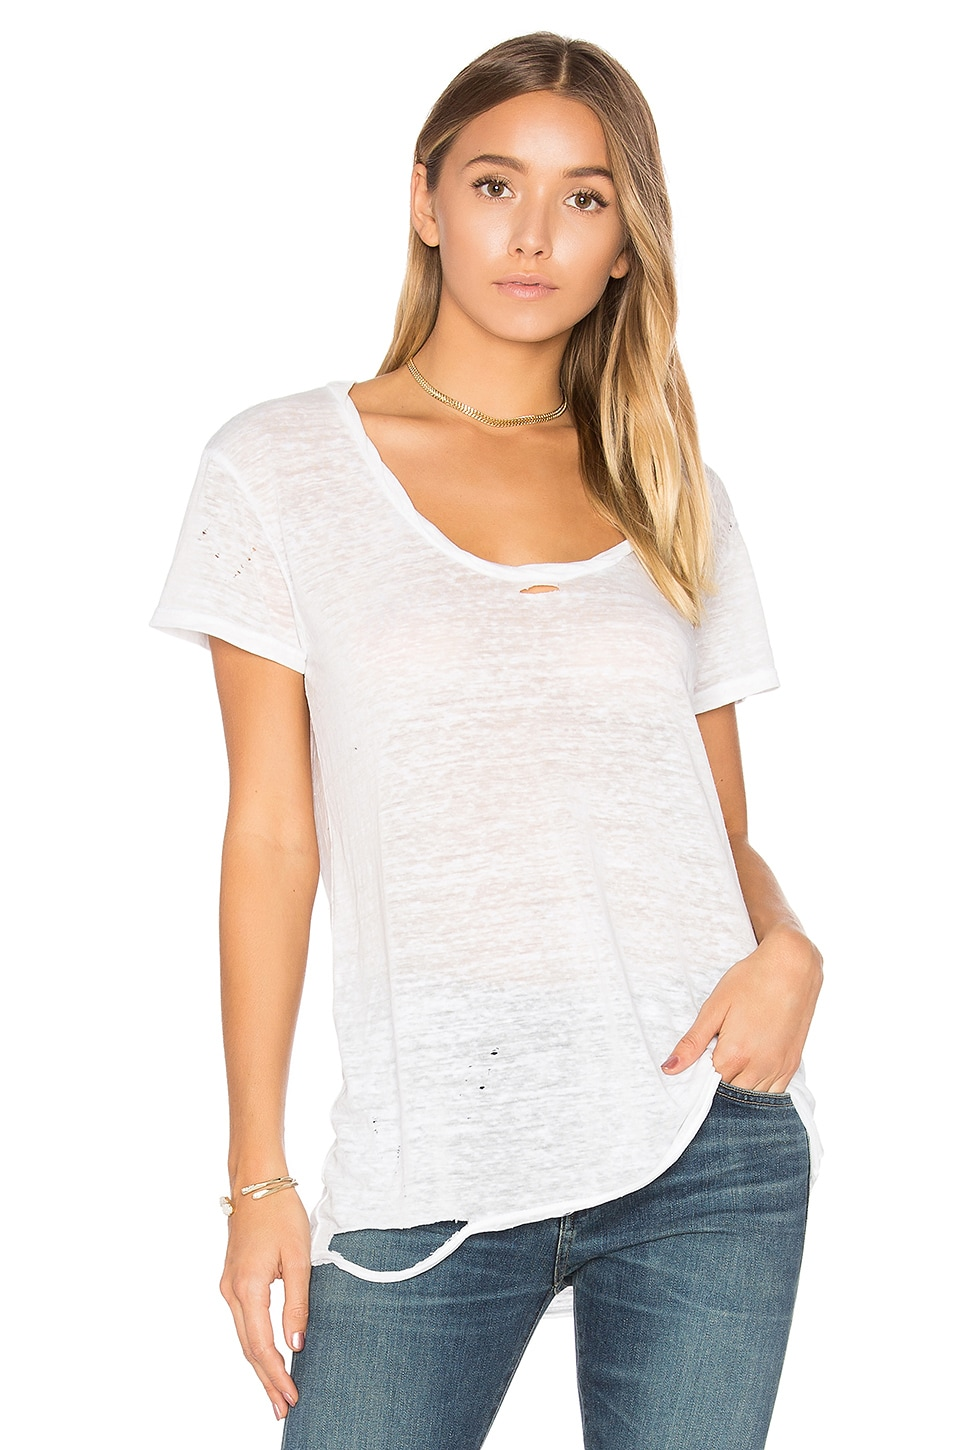 Destroyed Scoop Neck Tee by Pam & Gela